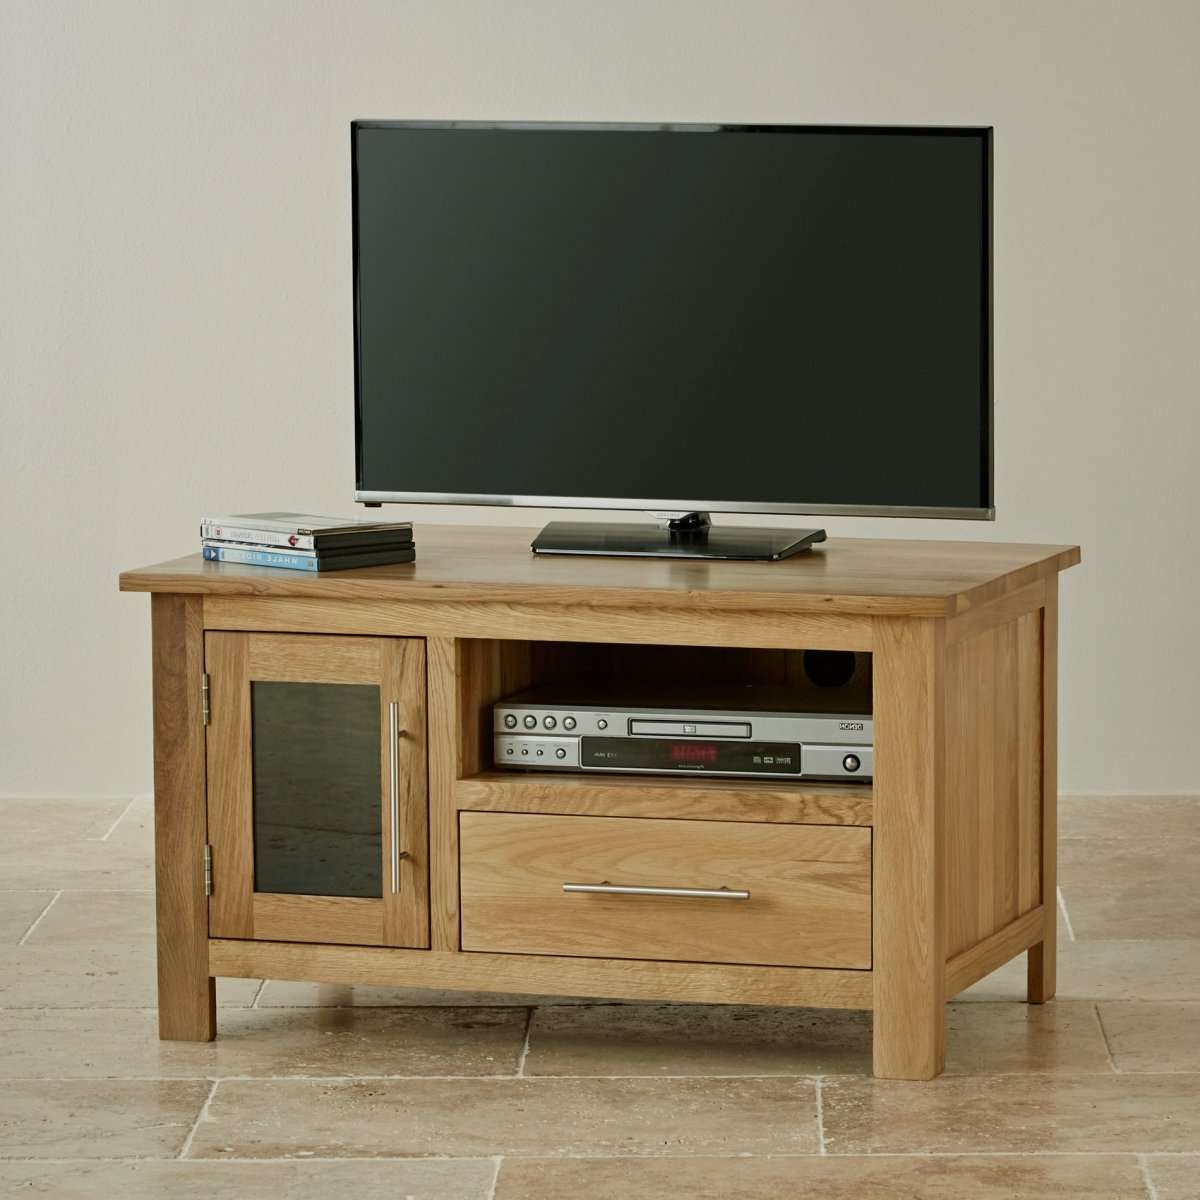 Rivermead Natural Solid Oak Tv + Dvd Cabinet | Lounge Furniture With Oak Tv Cabinets (View 10 of 20)